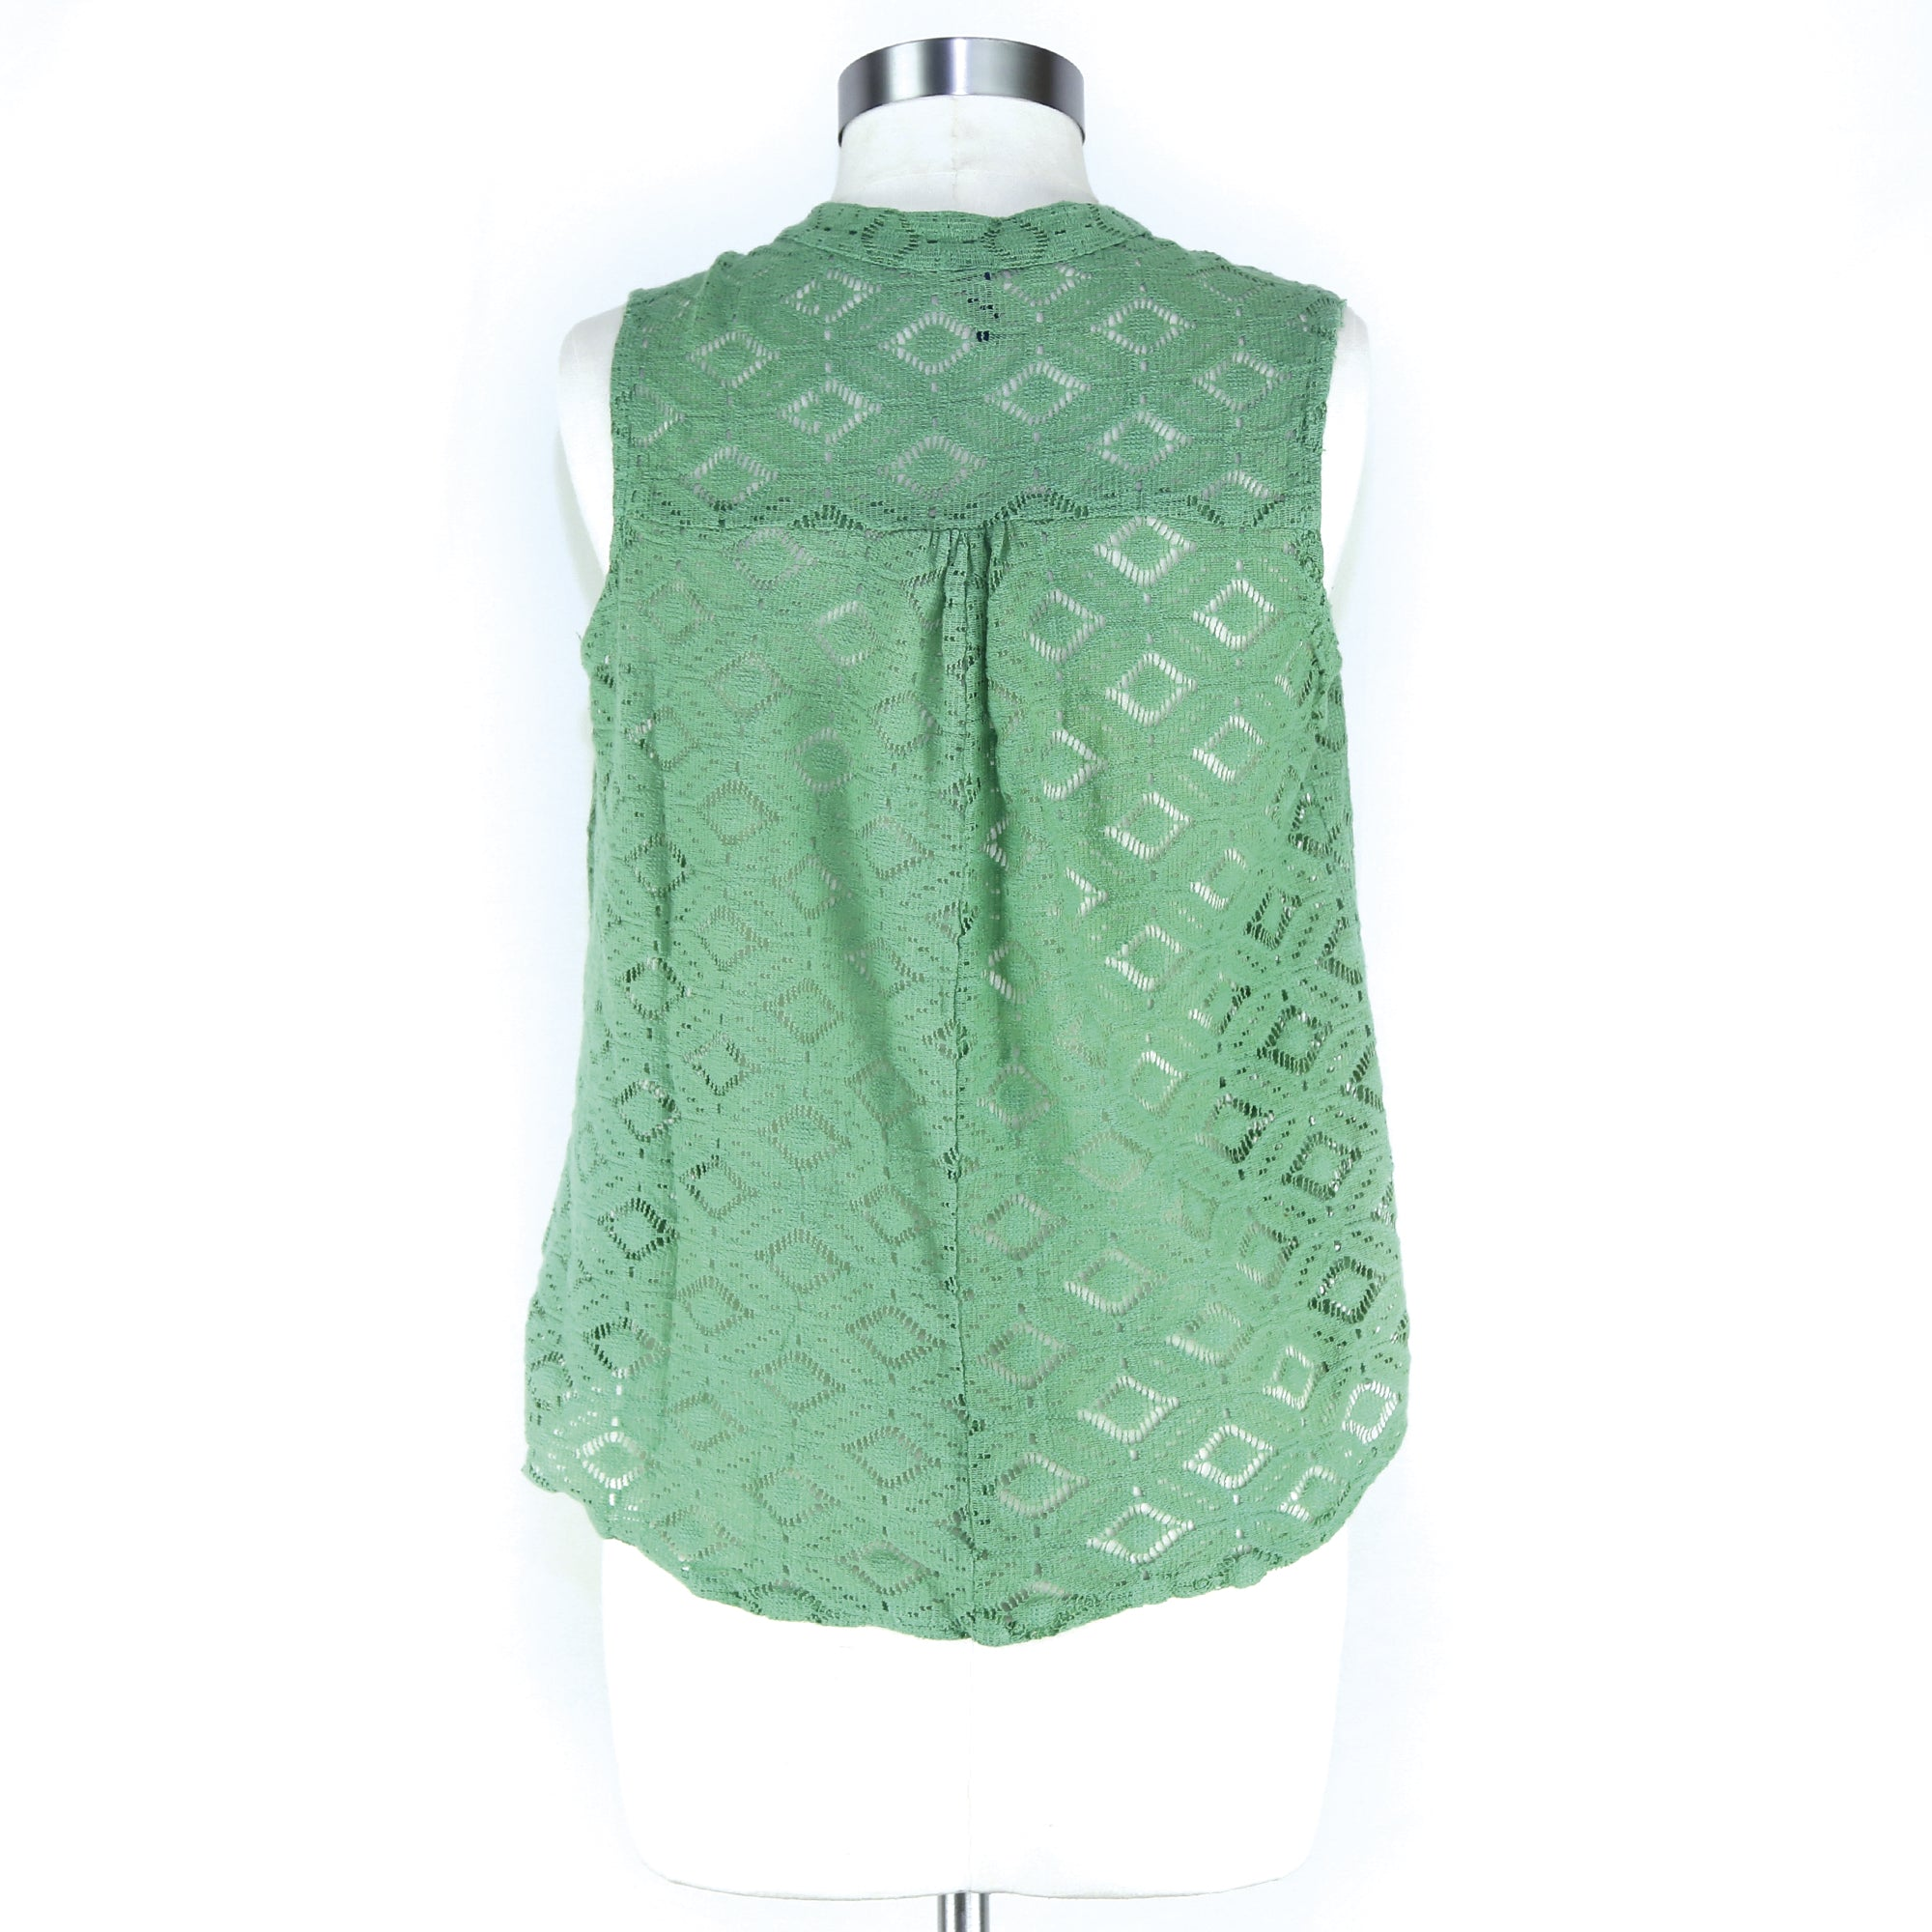 Cecil Green Large Women's Sweater Vest - Six 3 Shop